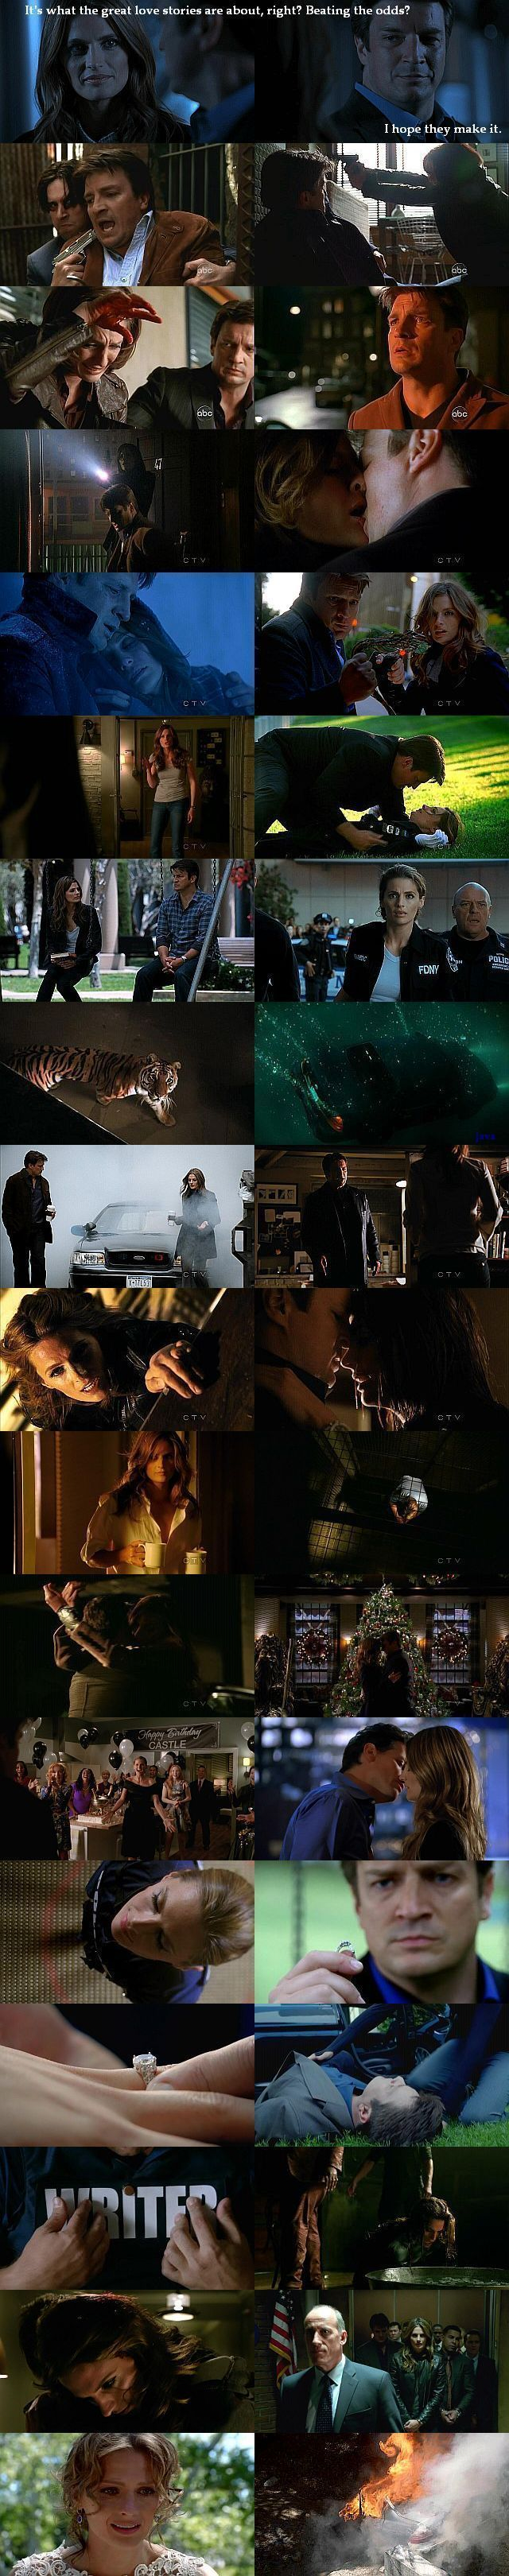 some of the best and most suspensful castle moments